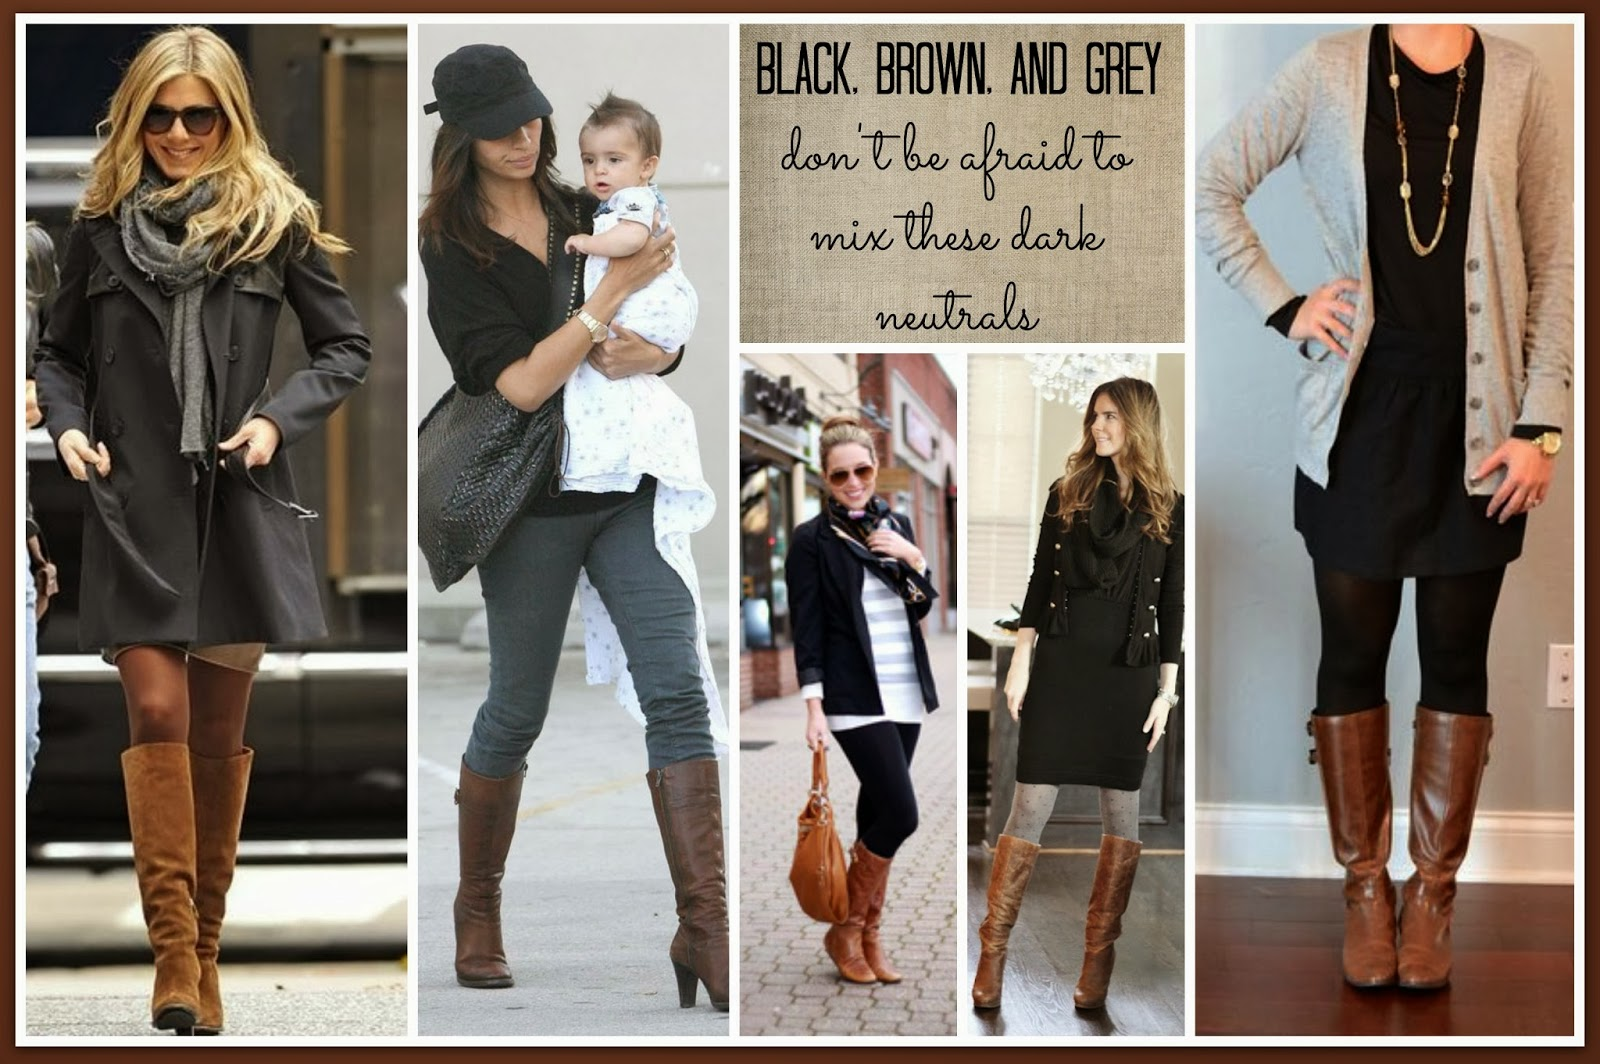 Black, Brown, And Grey Collage